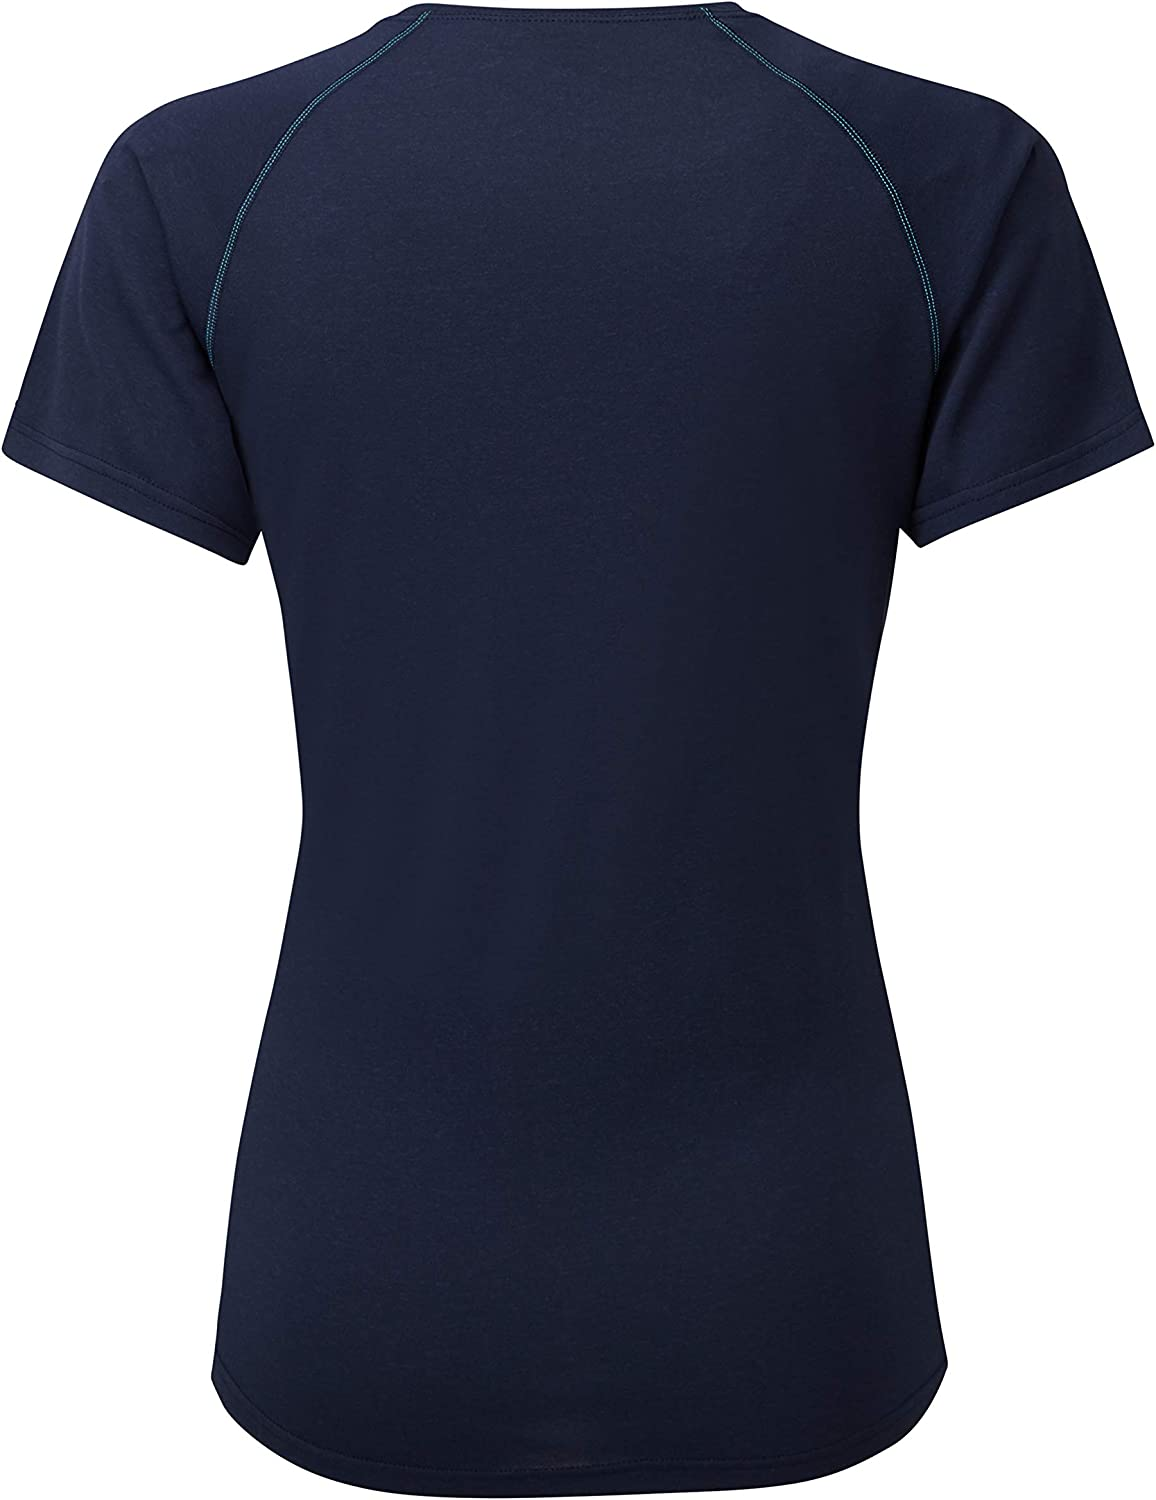 Ronhill Womens Wmns Core S//S Tee Short Sleeved